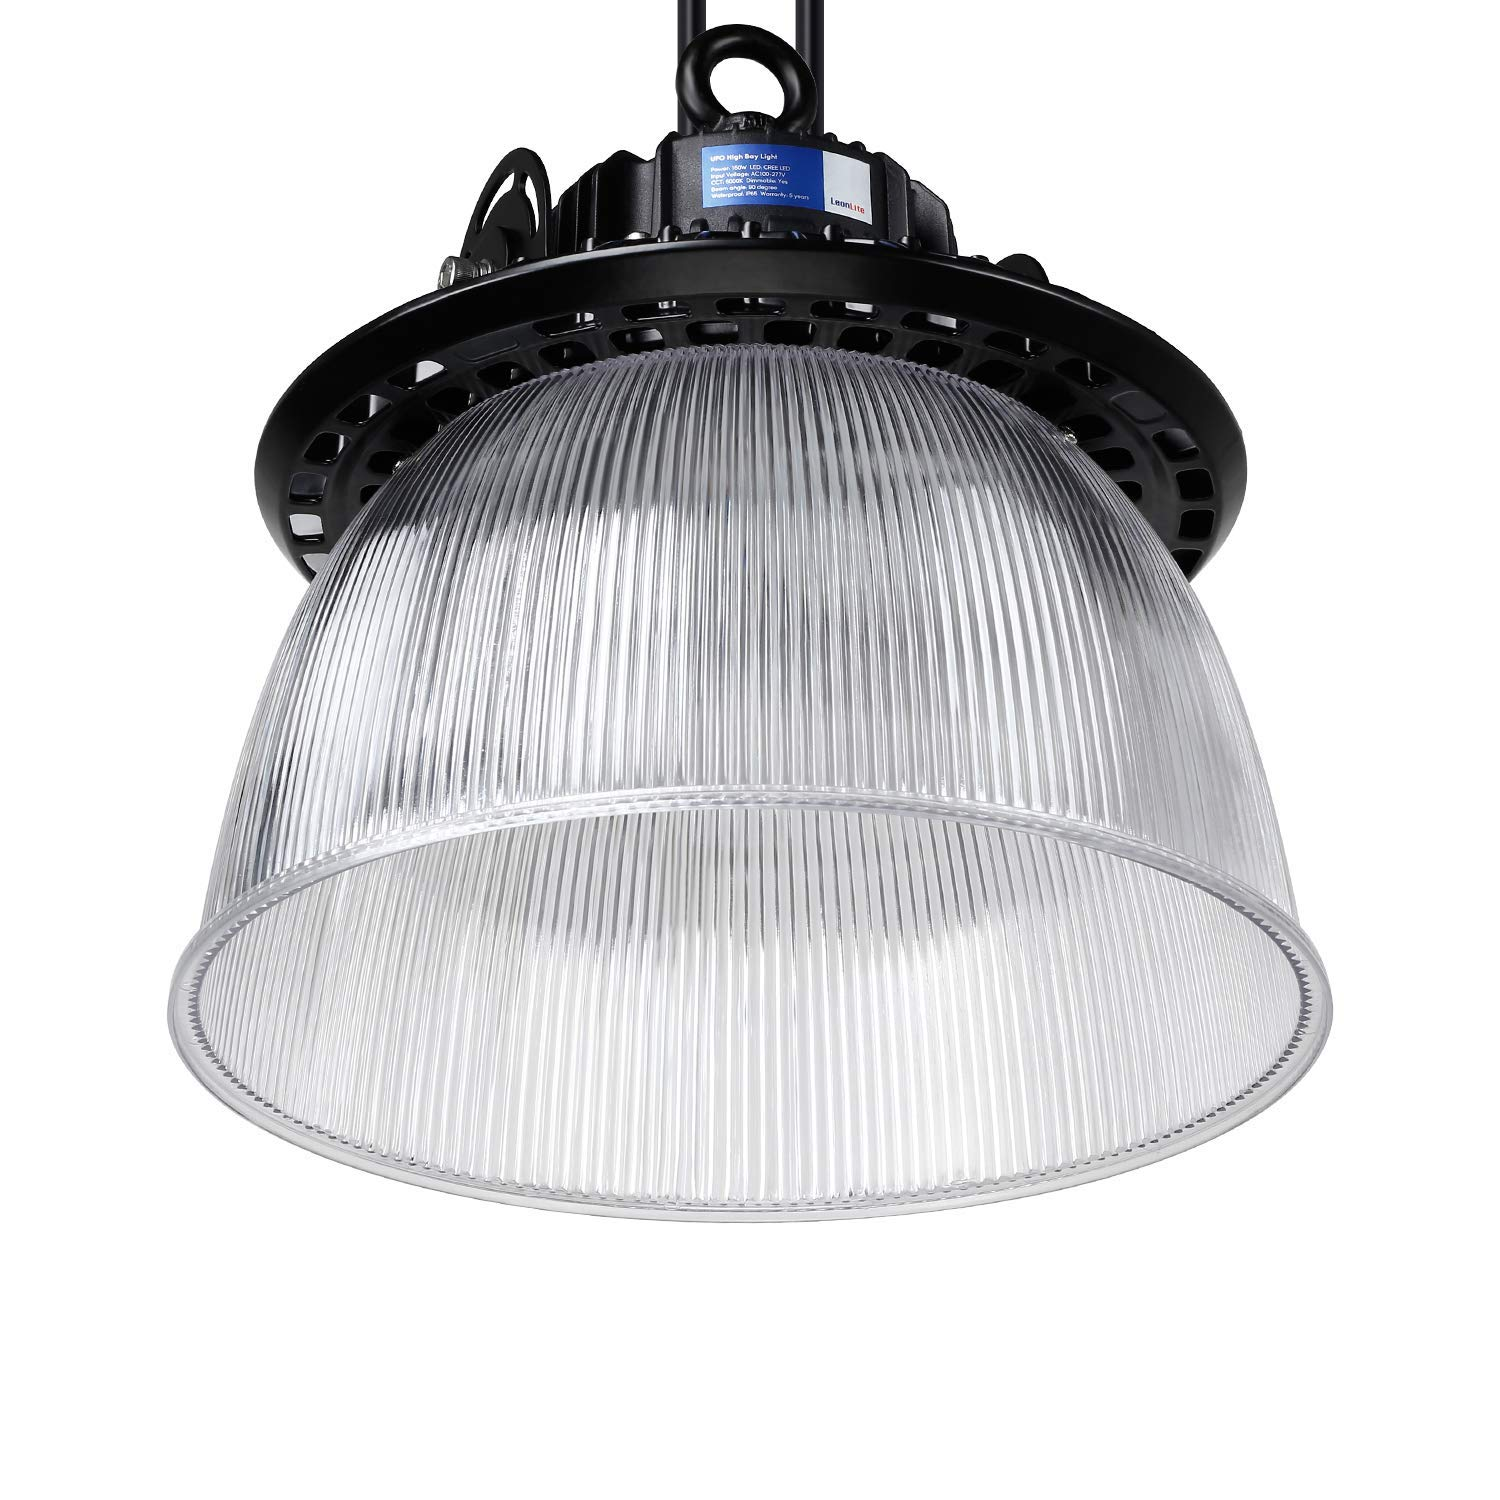 LEONLITE LED UFO High Bay Light, 21,450lm Ultra Bright, 150W (600W MHL/HID Equiv.), ETL & DLC Listed, Commercial/Industrial Lighting, 5 Years Warranty